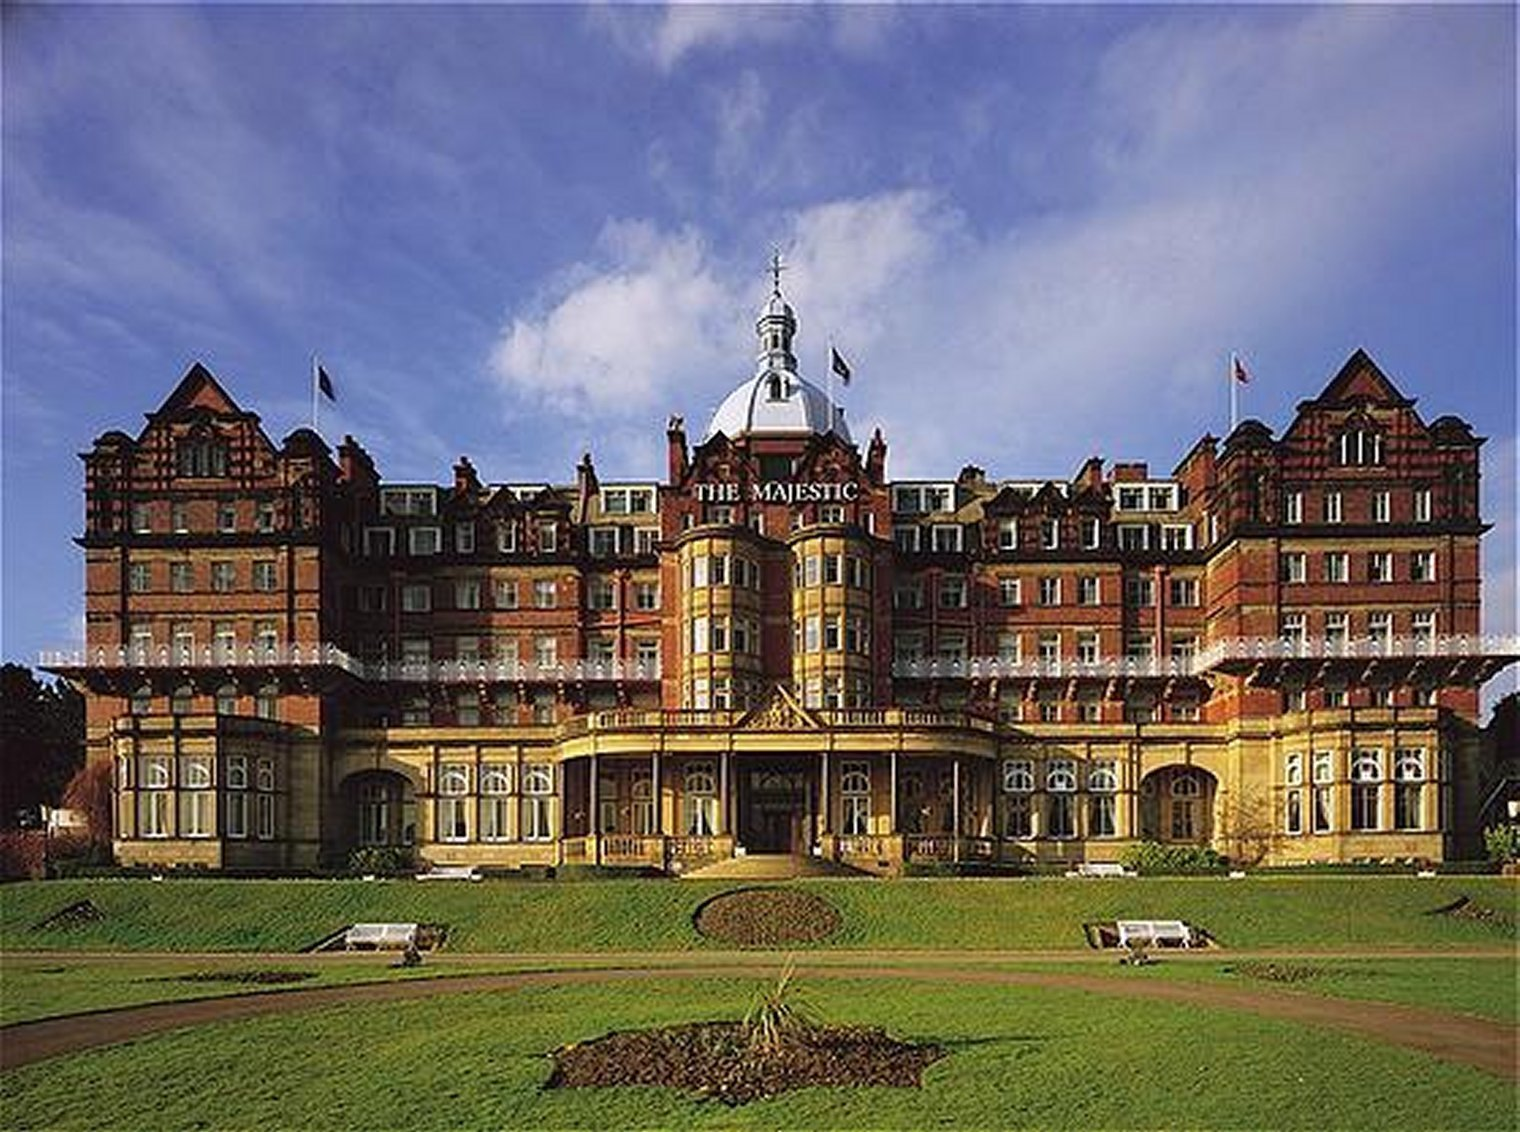 Our Speciality >> BPS @ The Majestic Hotel, Harrogate - The UK's Finest Wedding, Corporate & Party Band